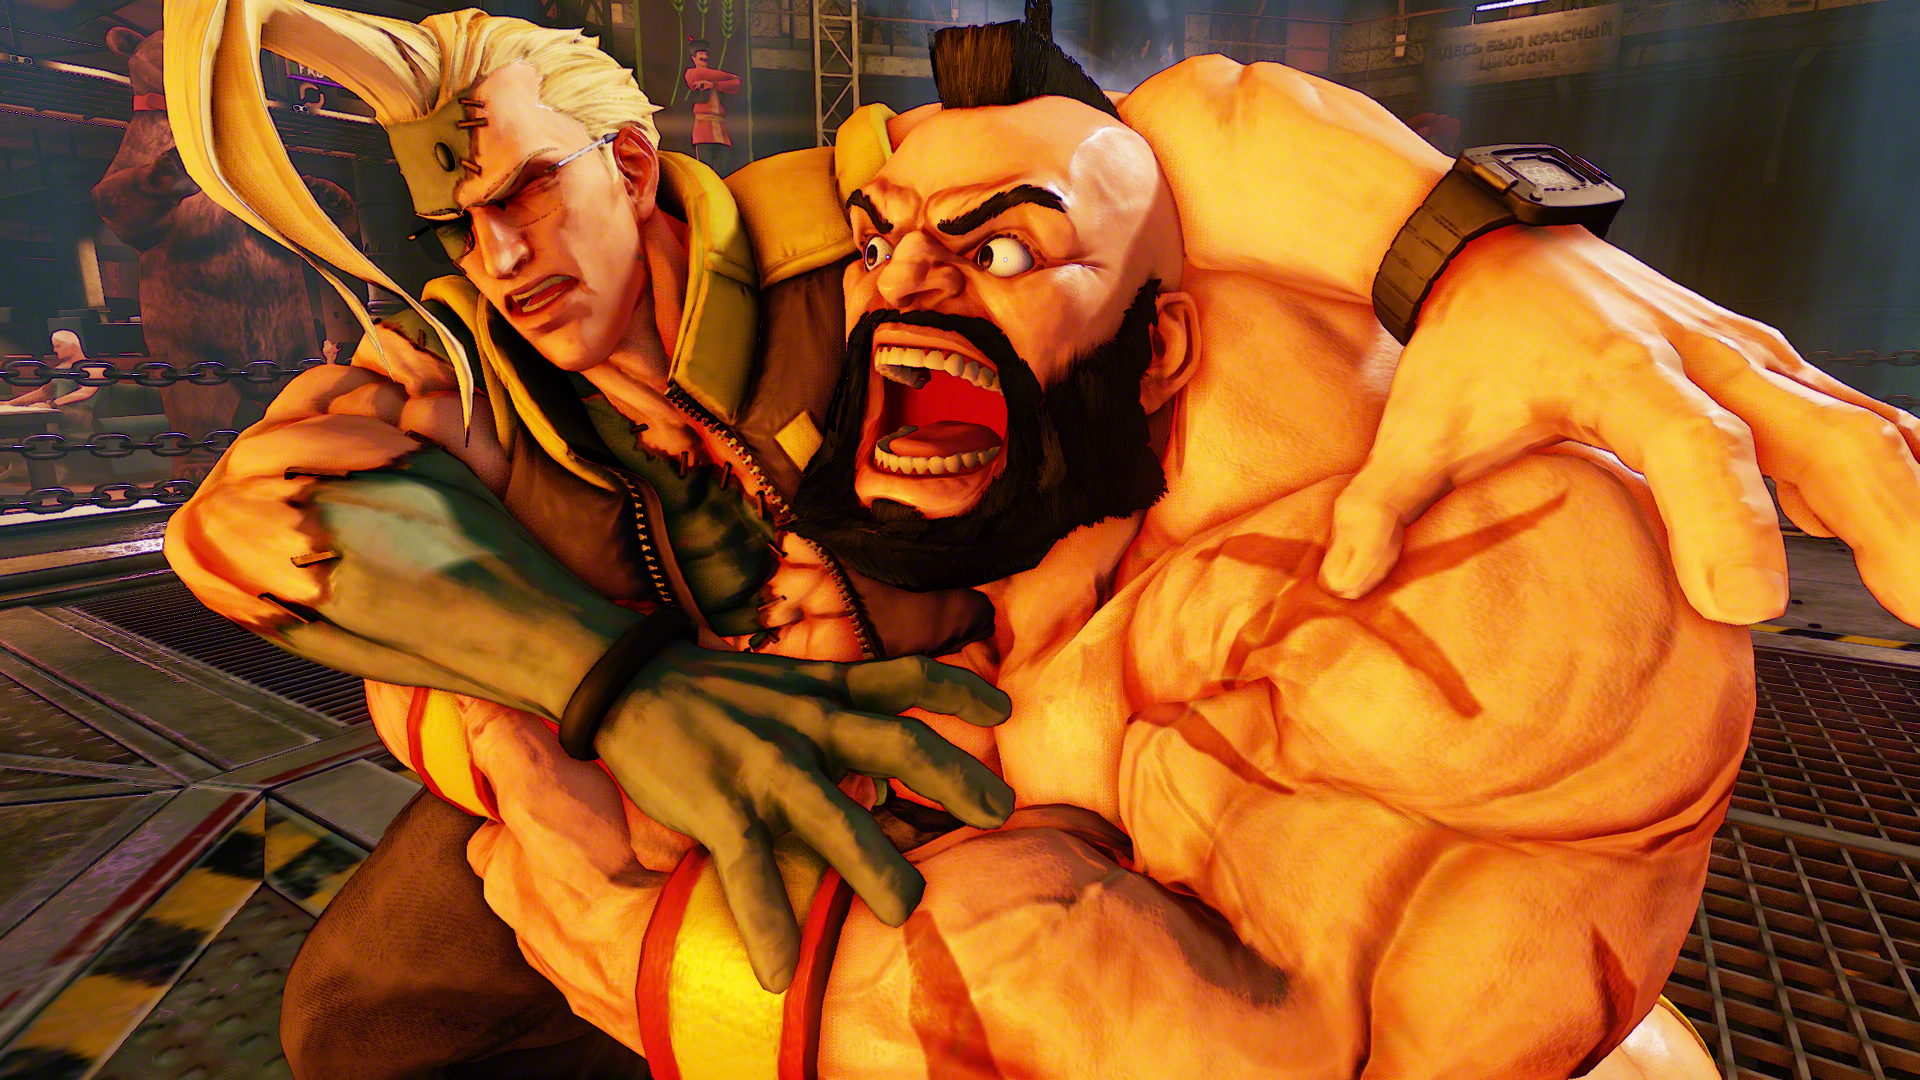 Street Fighter V S Newly Announced Character Zangief Gets Muscular